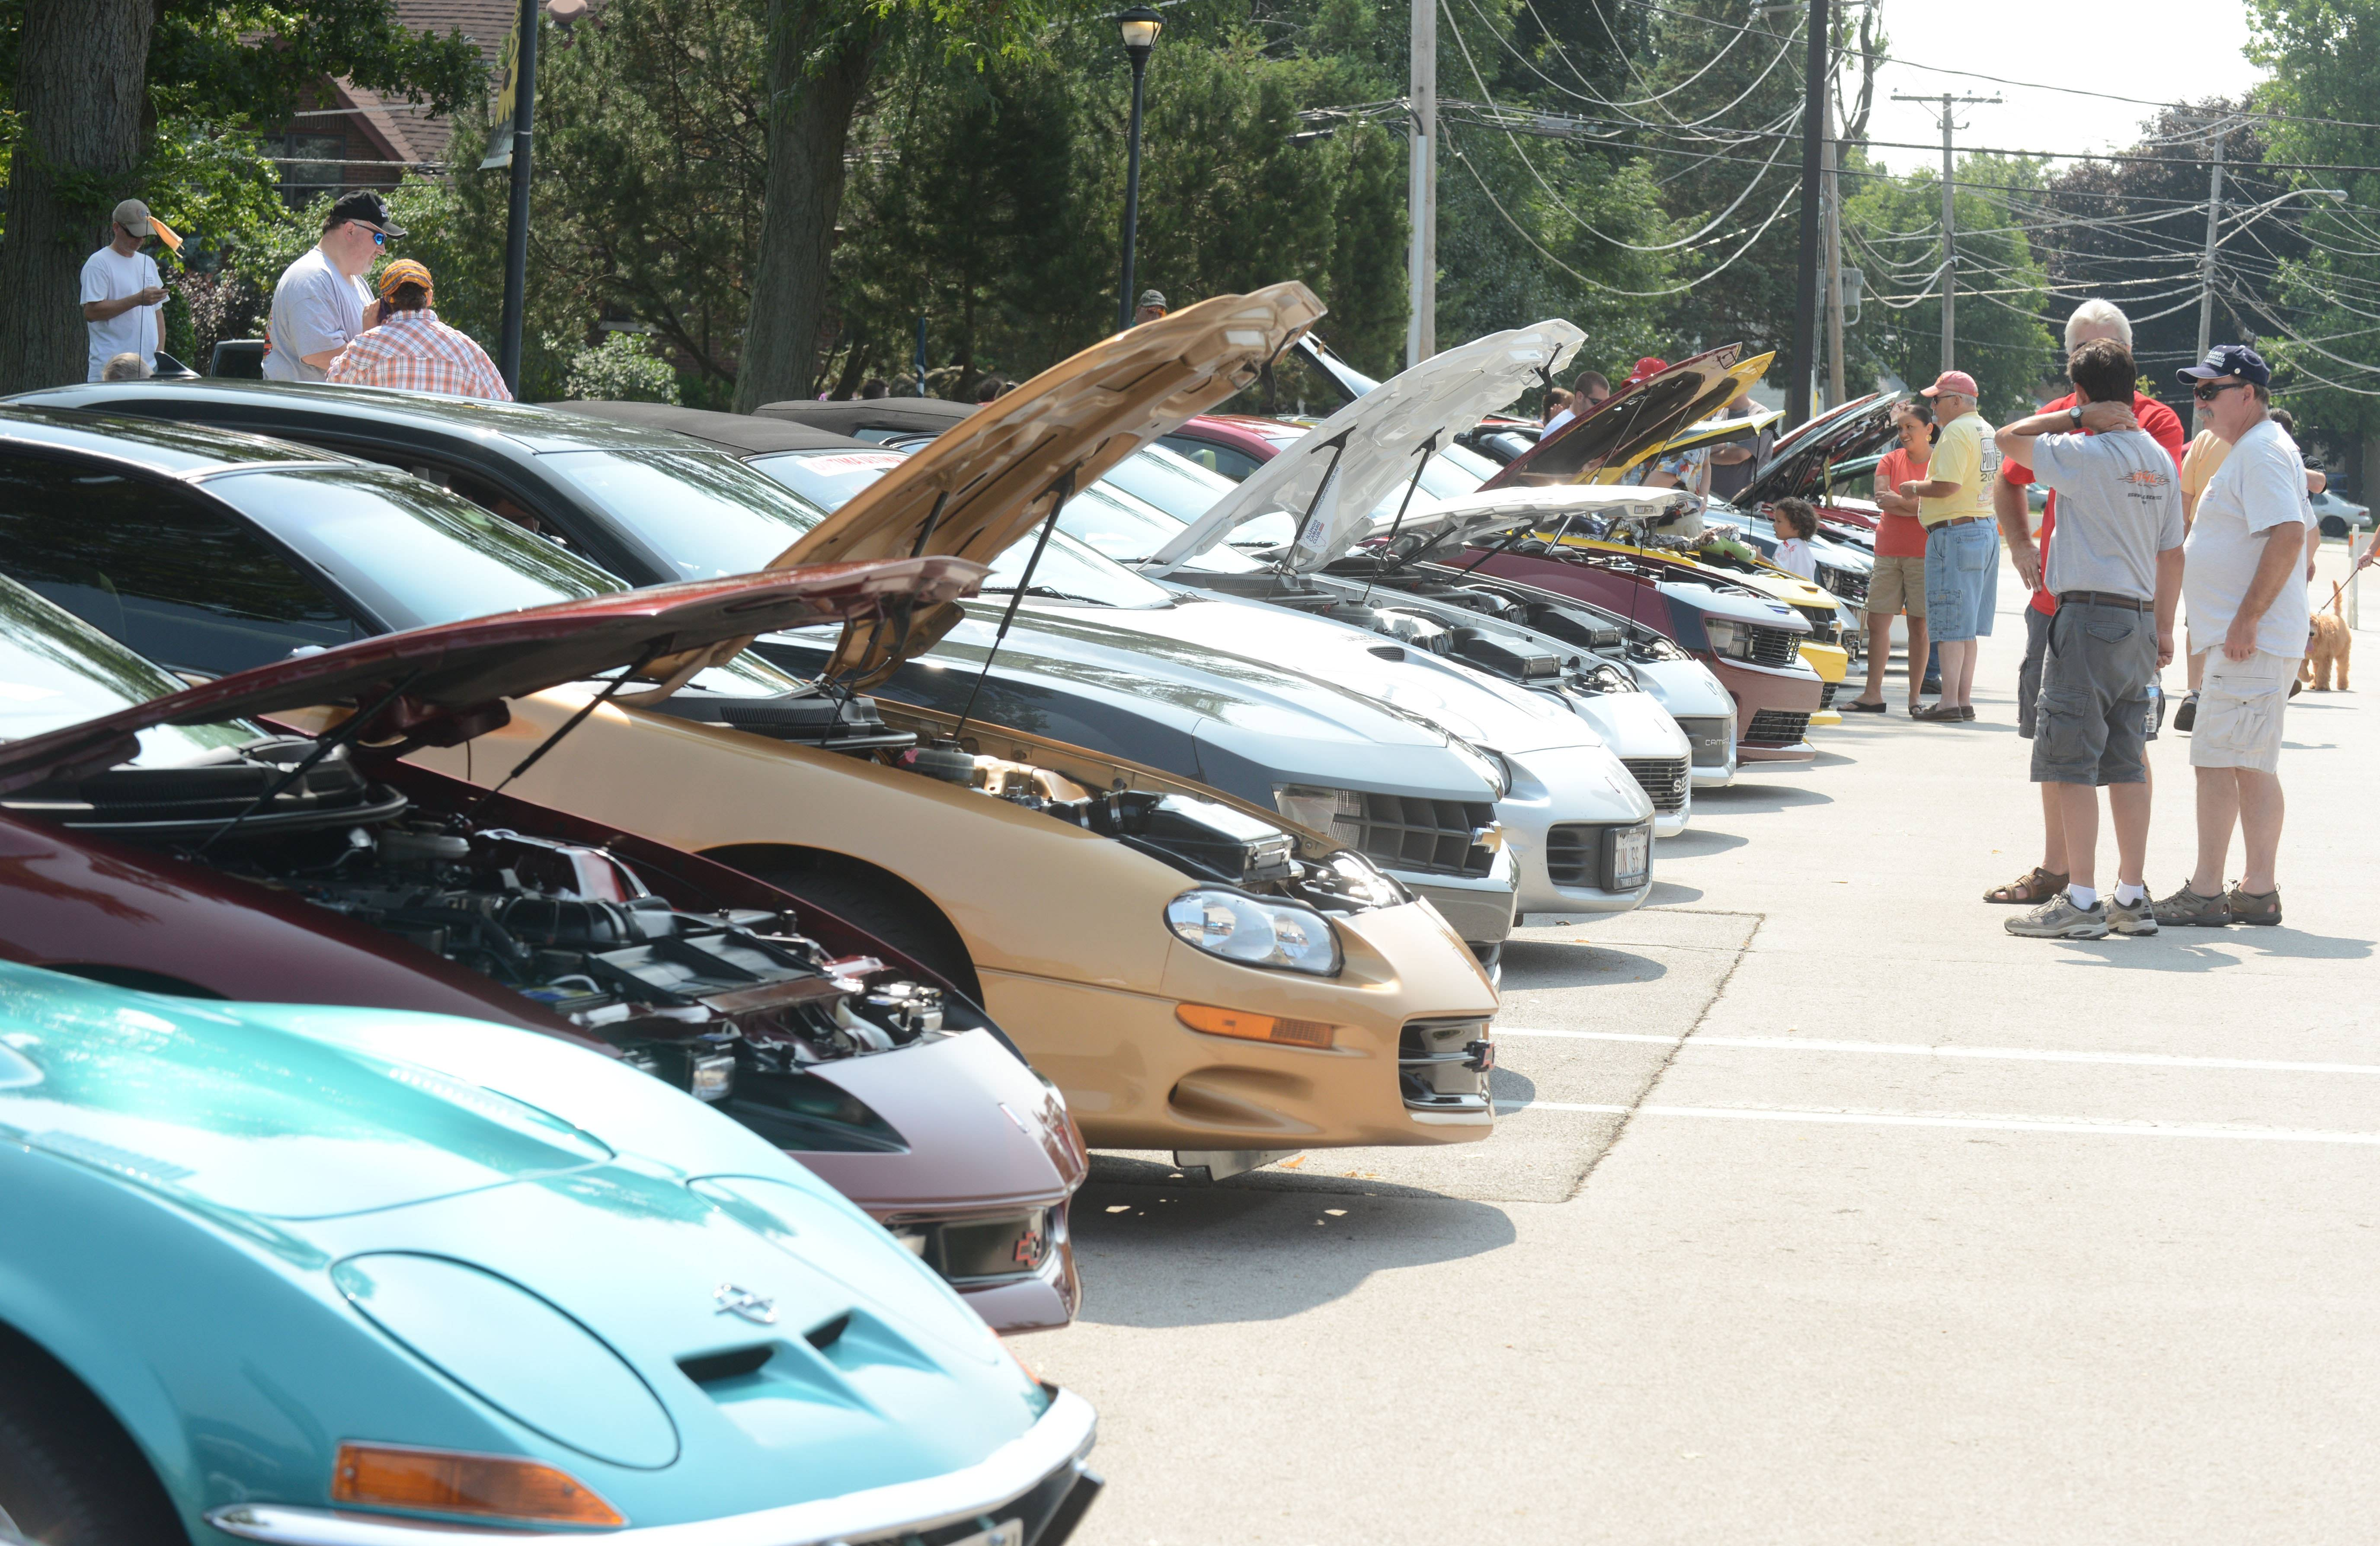 The Summer Daze car show in Warrenville attracted more than 50 cars and bikes to the streets of the town. Food and music was also available later in the evening.